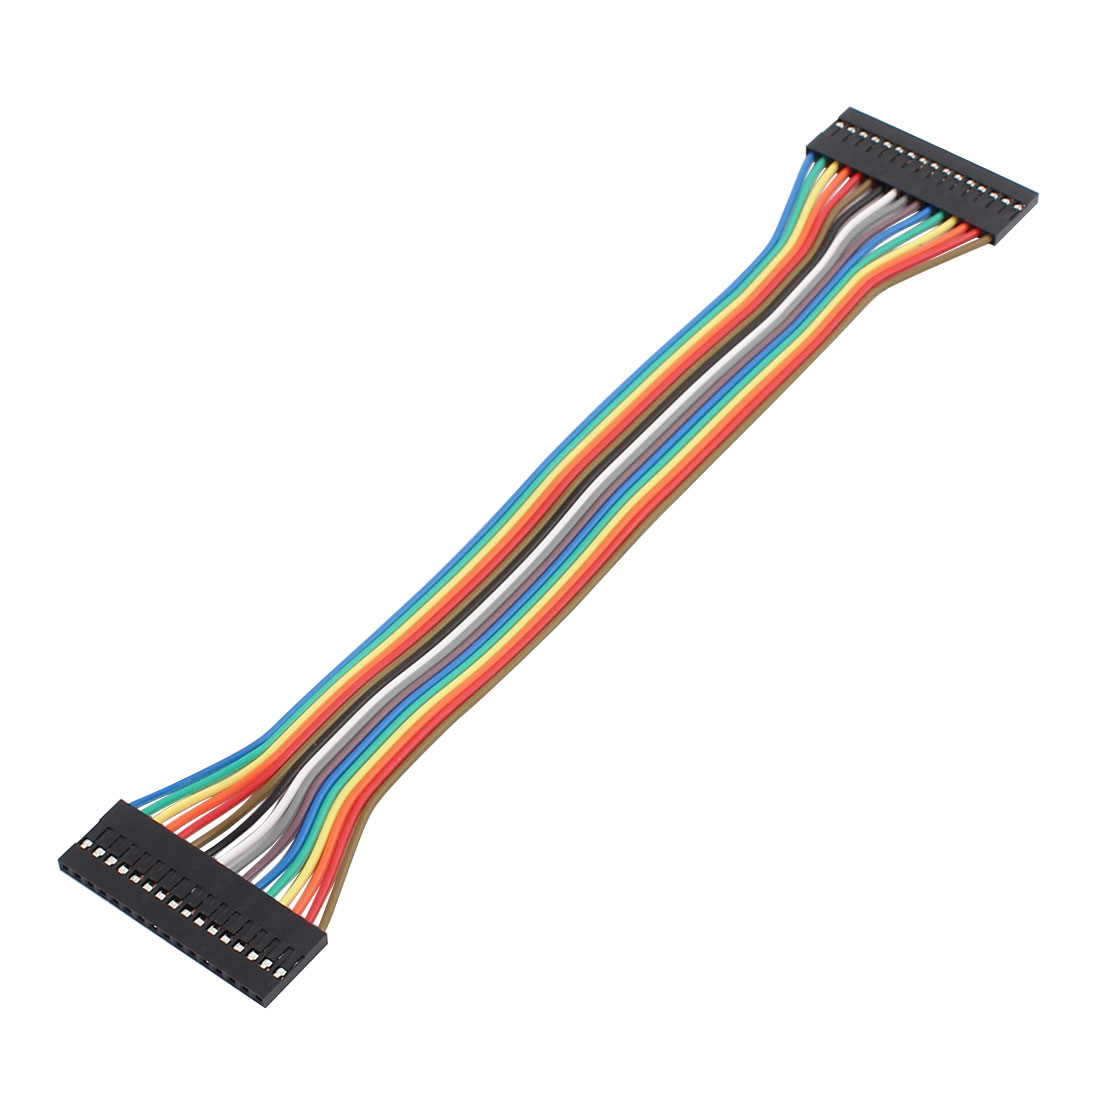 16P Jumper Wires Double Female Head Ribbon Cables Pi Pic Breadboard 21cm Long